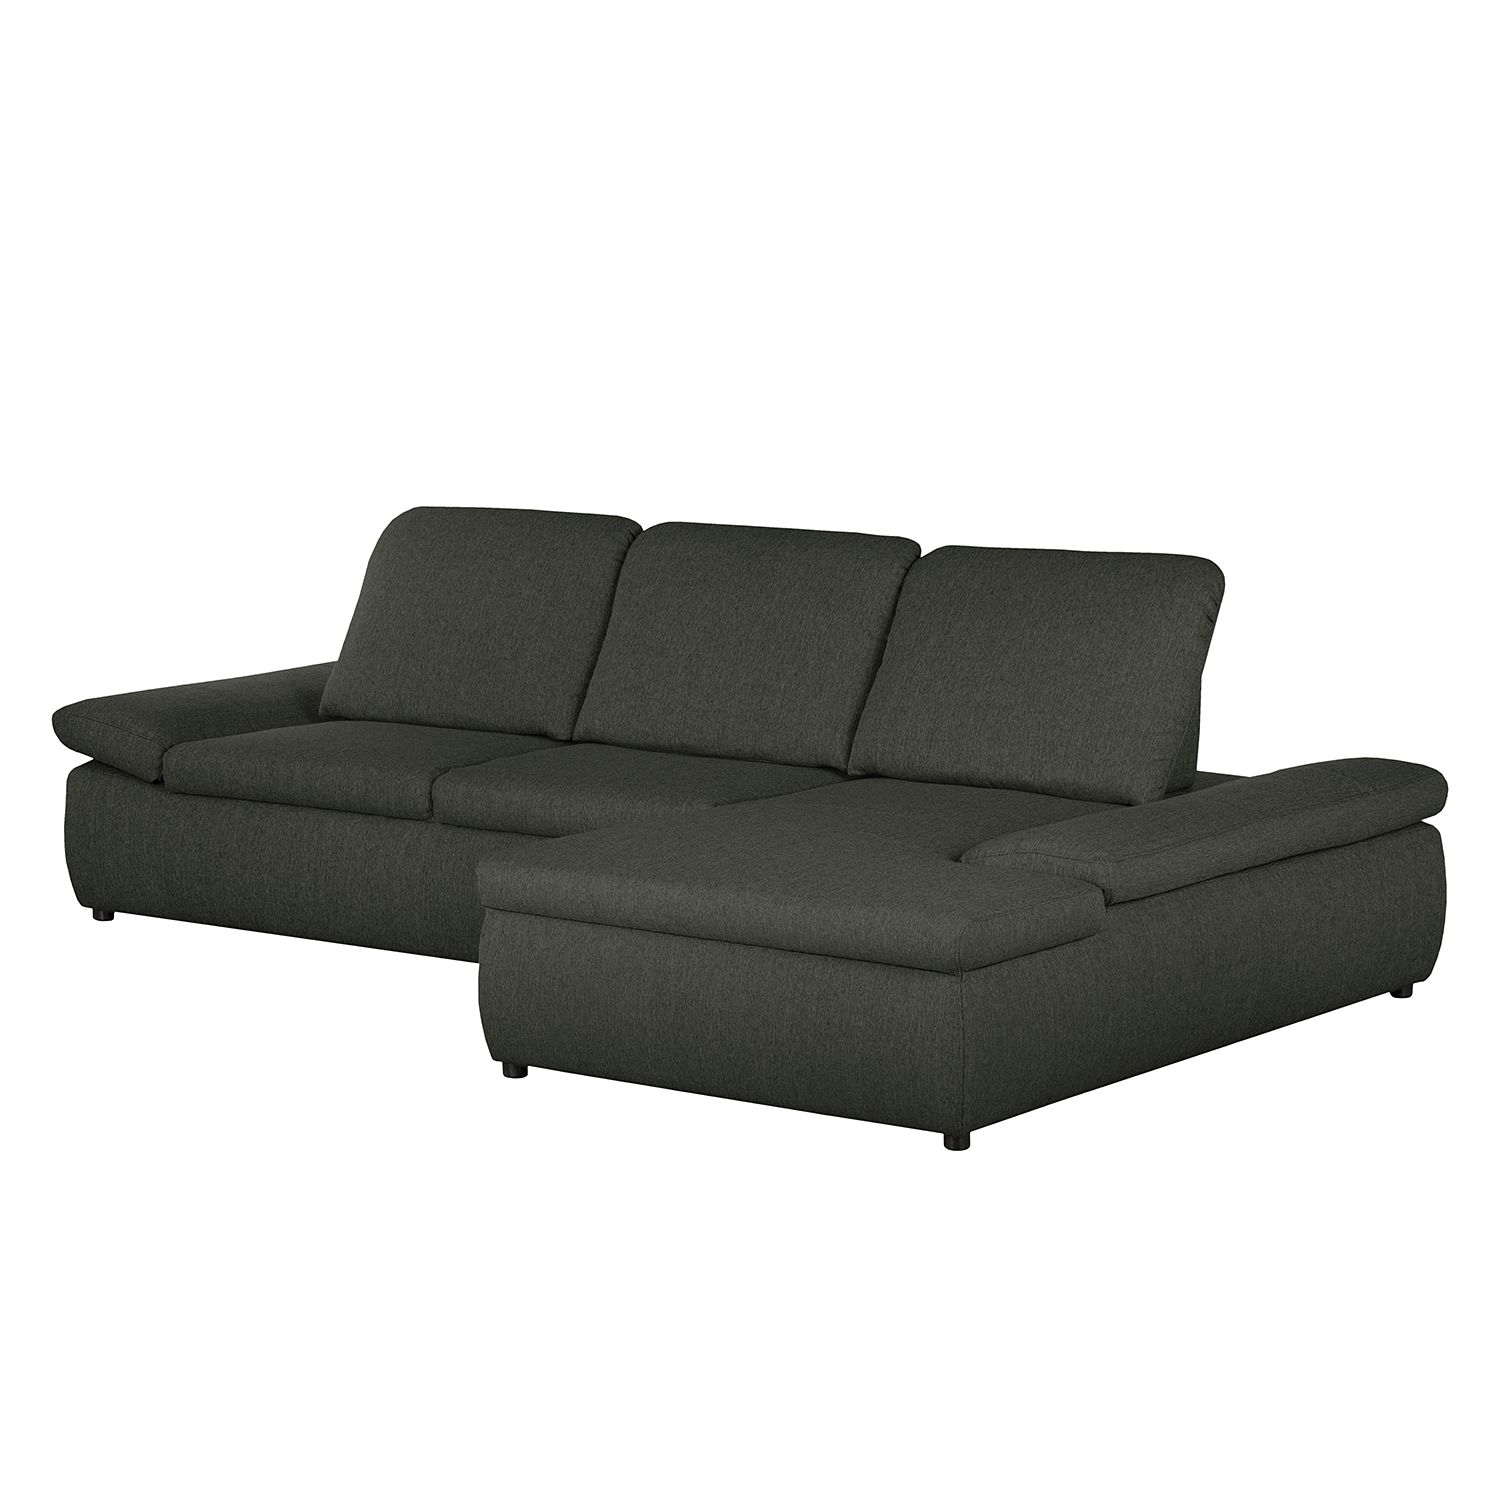 Boxspring Ecksofa Donhill II - Webstoff - Longchair davorstehend rechts - Anthrazit, roomscape